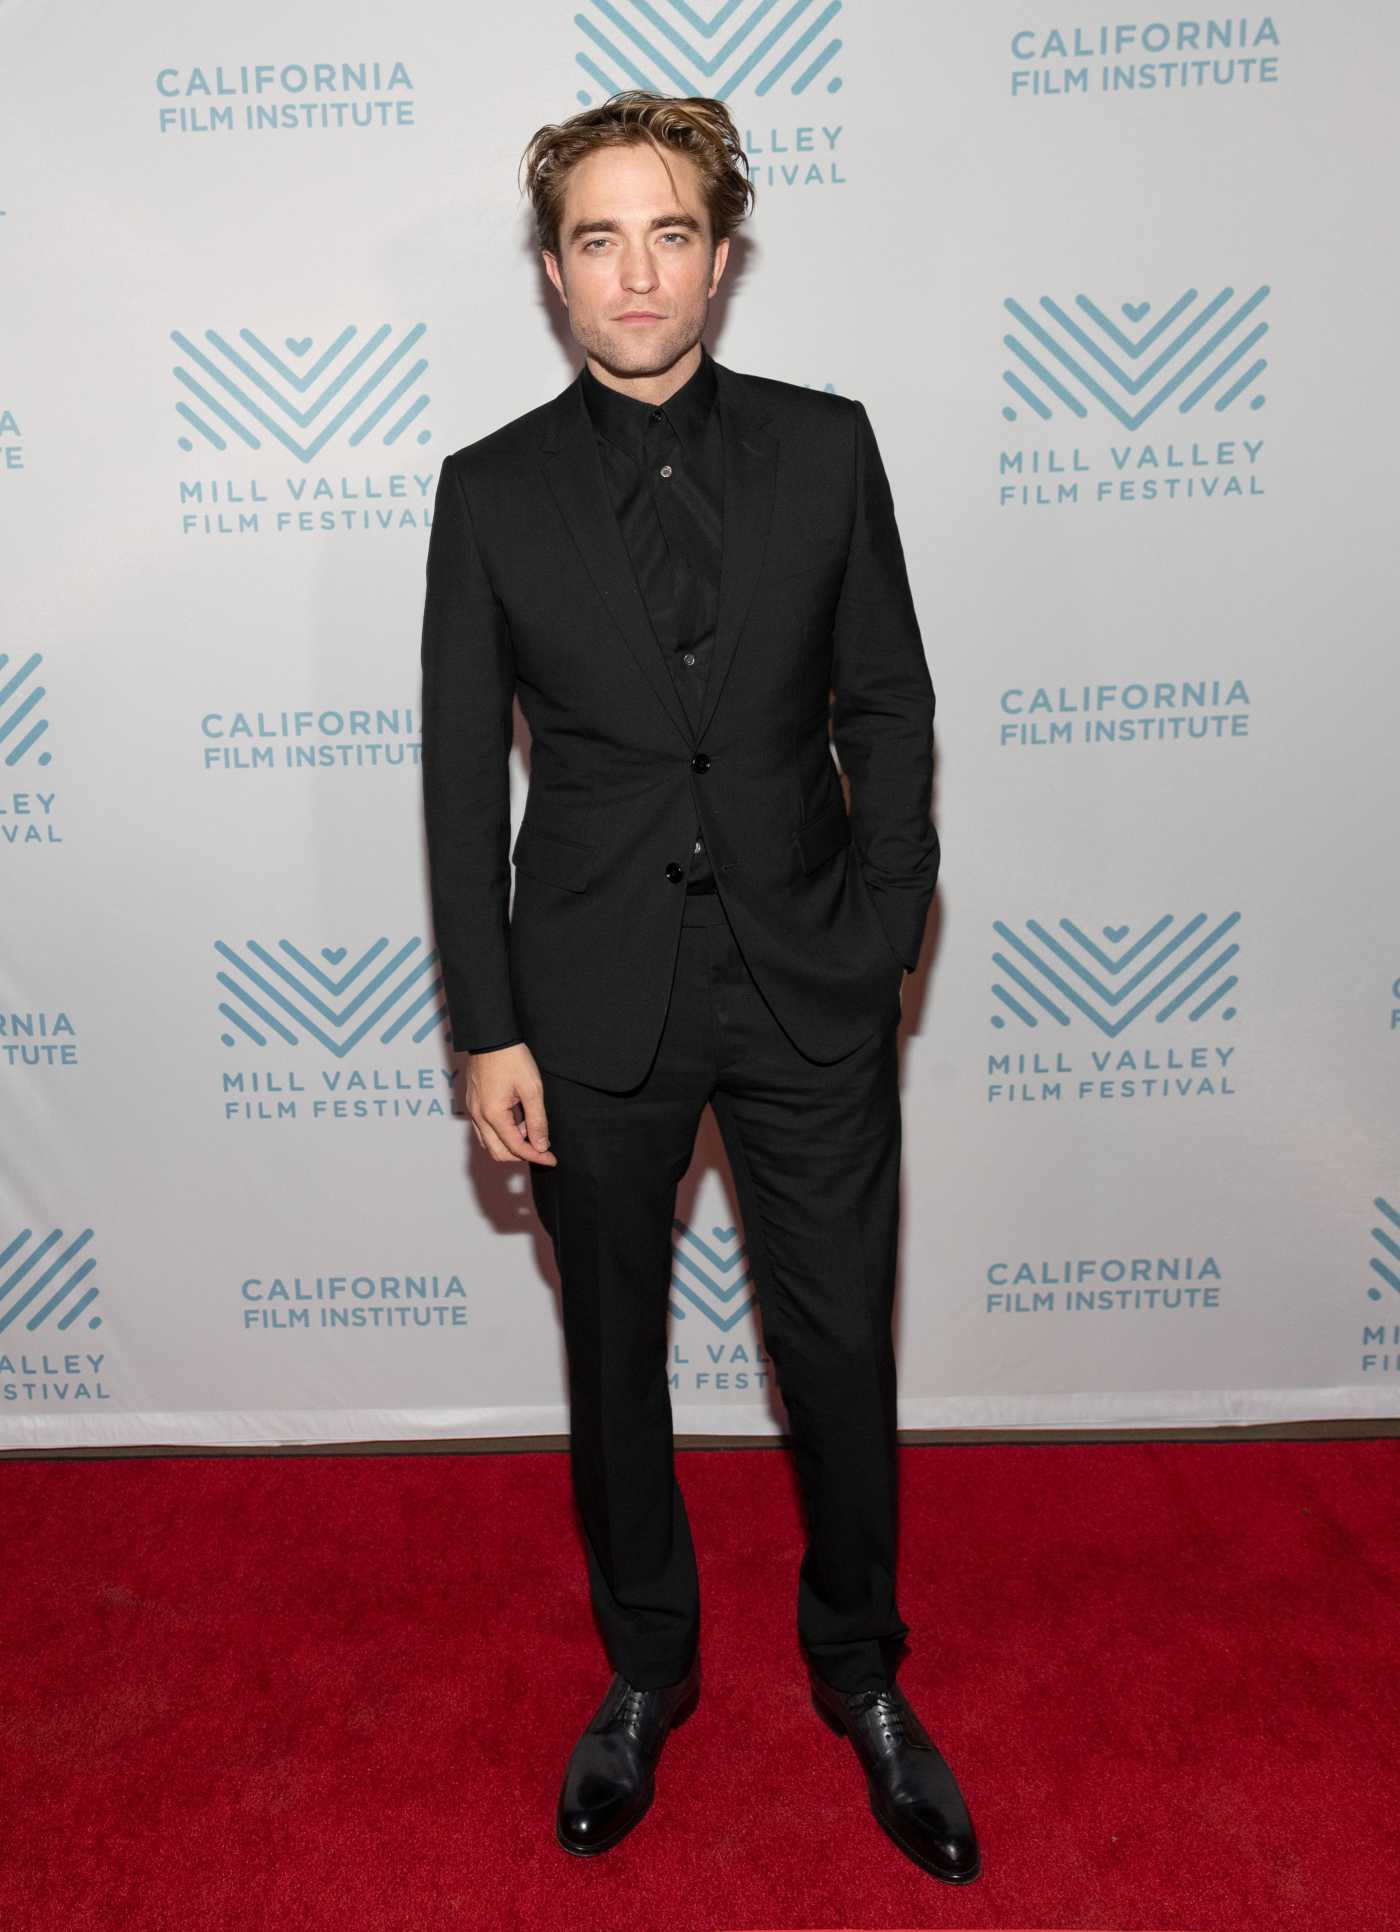 Robert Pattinson Attends the 42nd Mill Valley Film Festival in San Rafael 10/07/2019